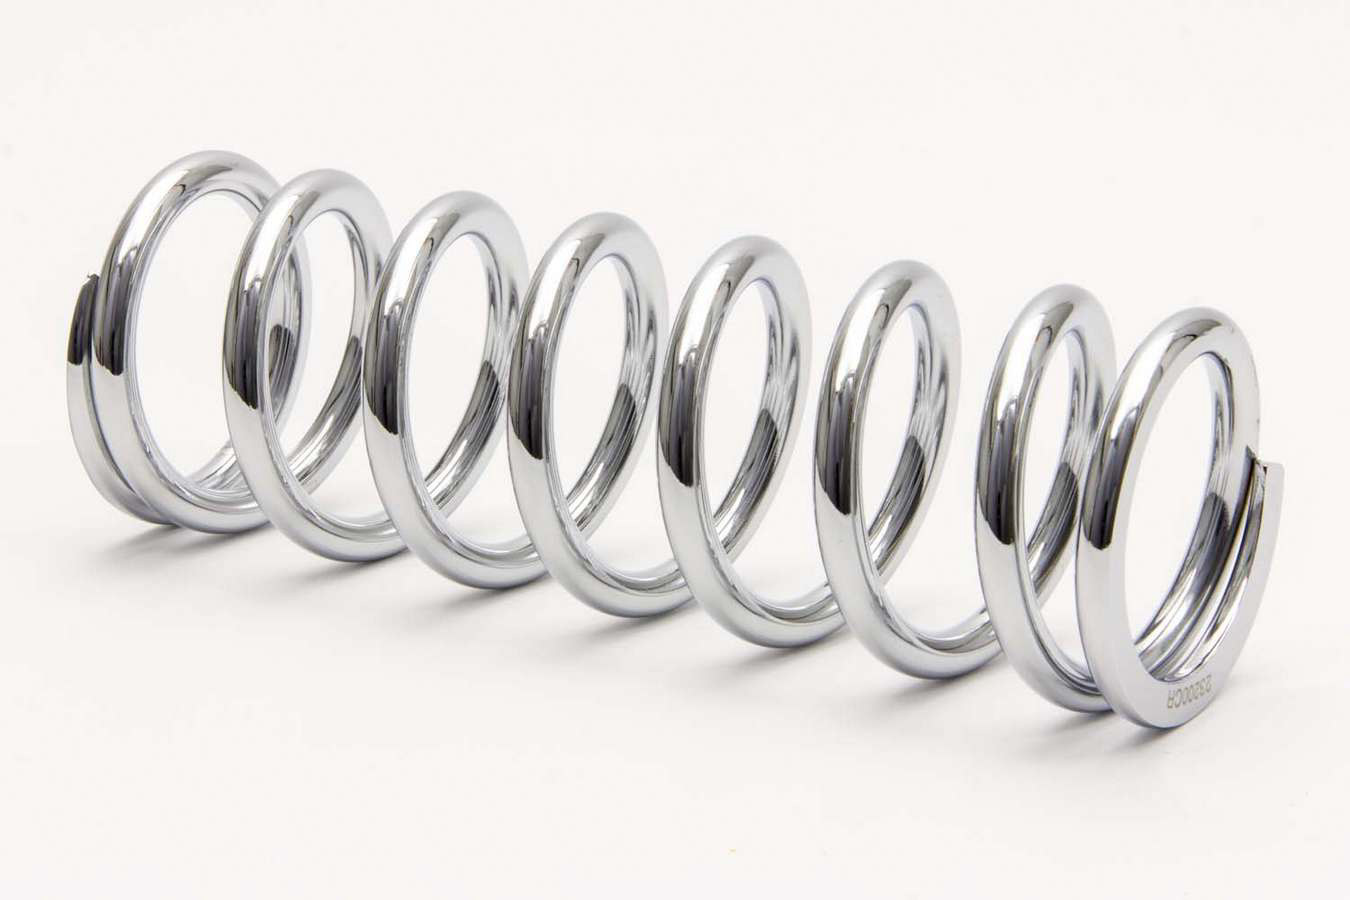 Coil-Over Hot Rod Spring 12in x 150#